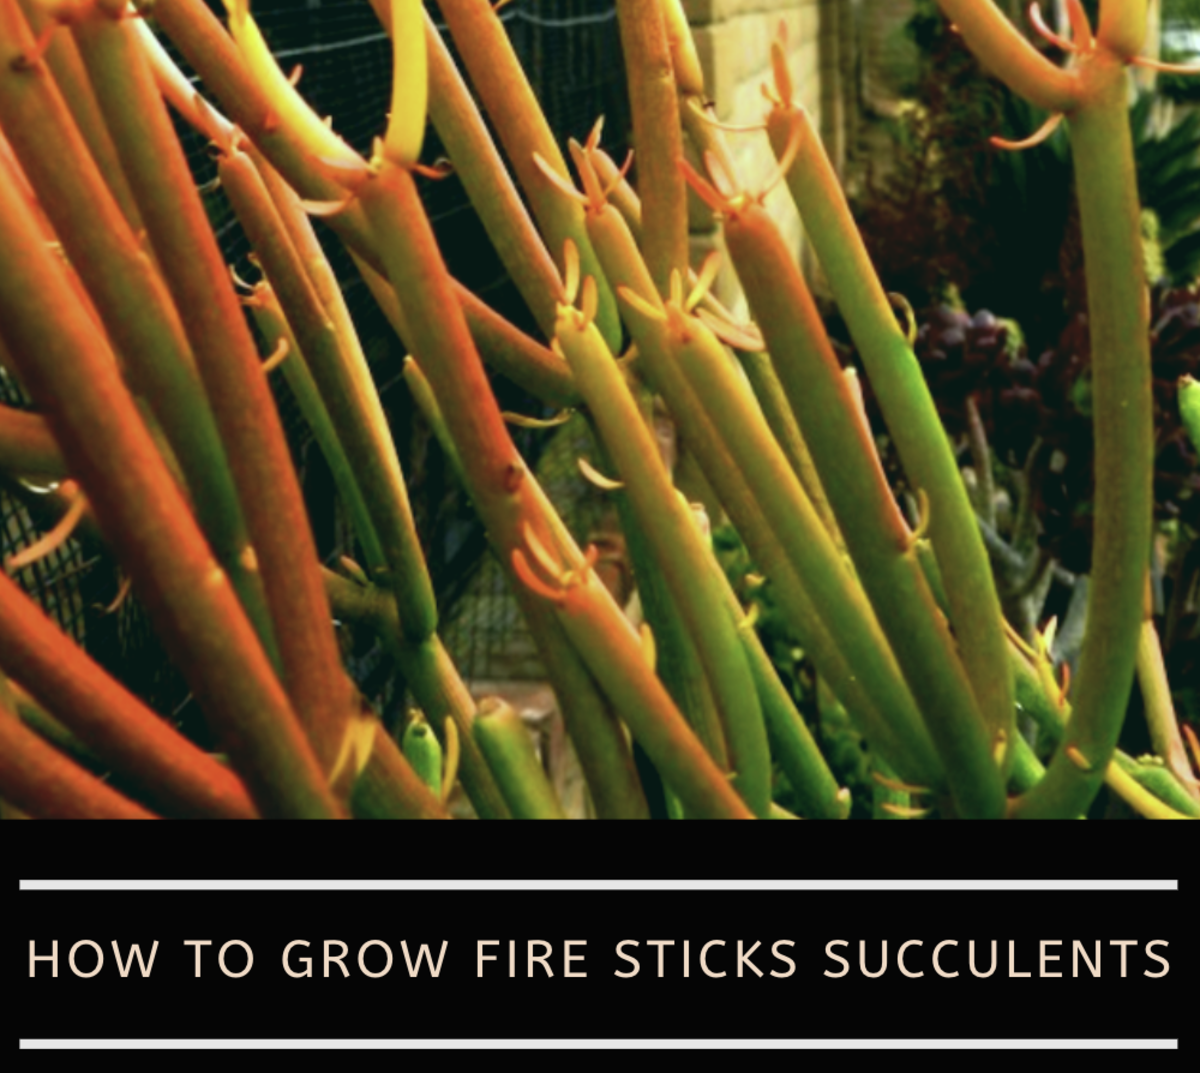 How To Care For Fire Sticks Succulents